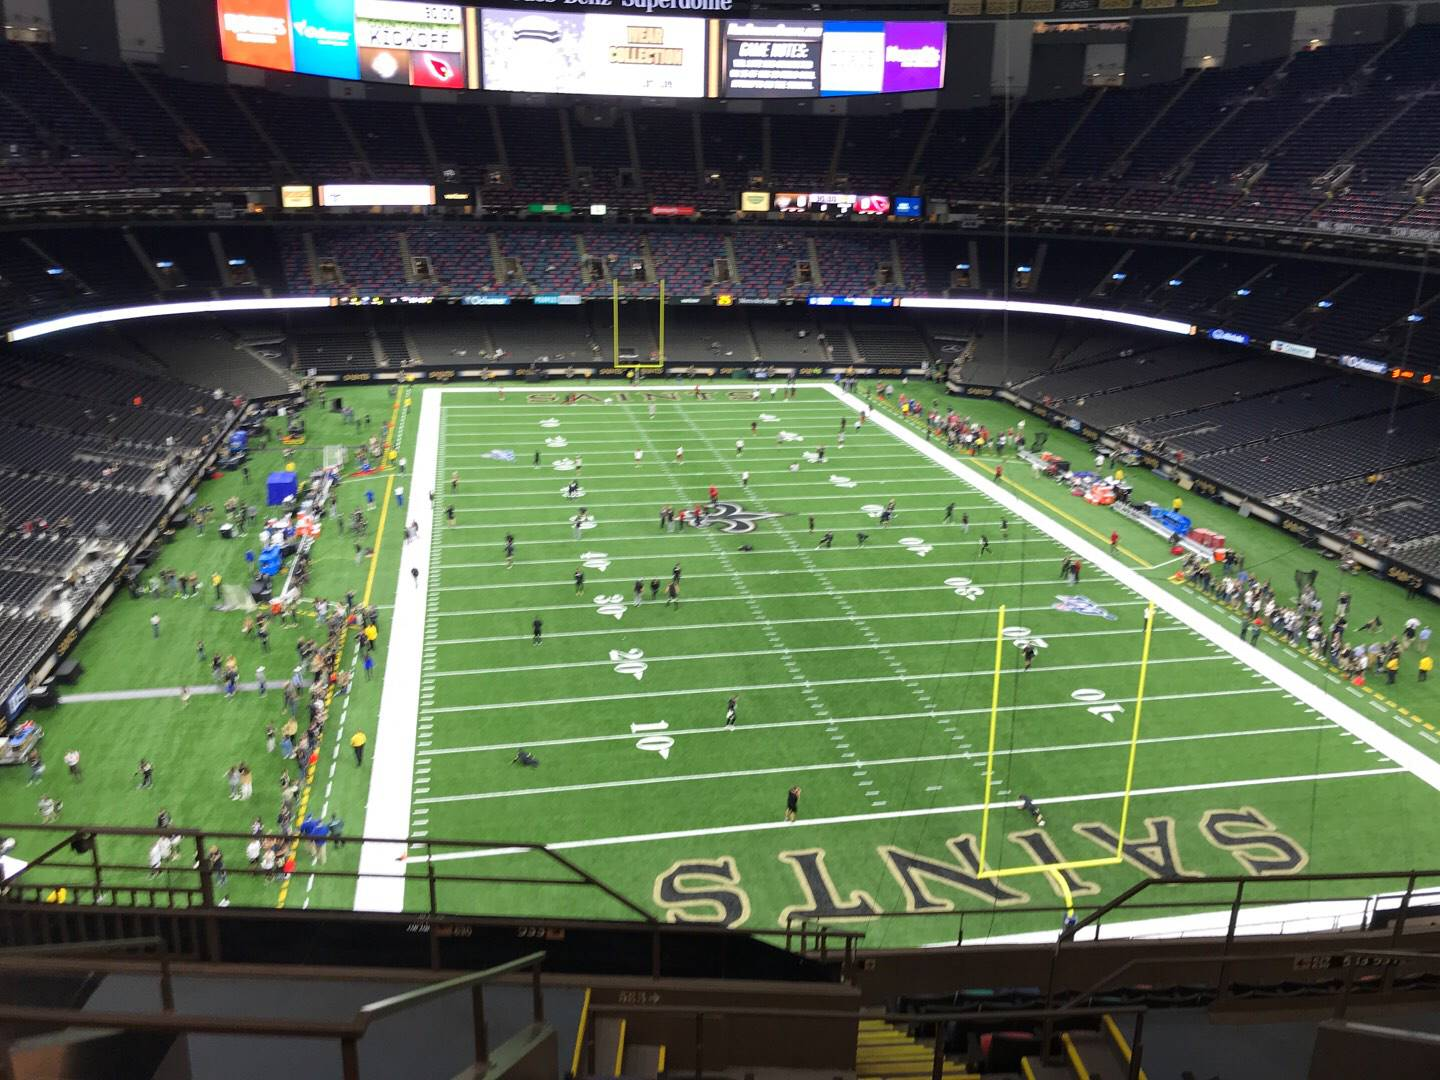 Mercedes-Benz Superdome Section 629 Row 9 Seat 13